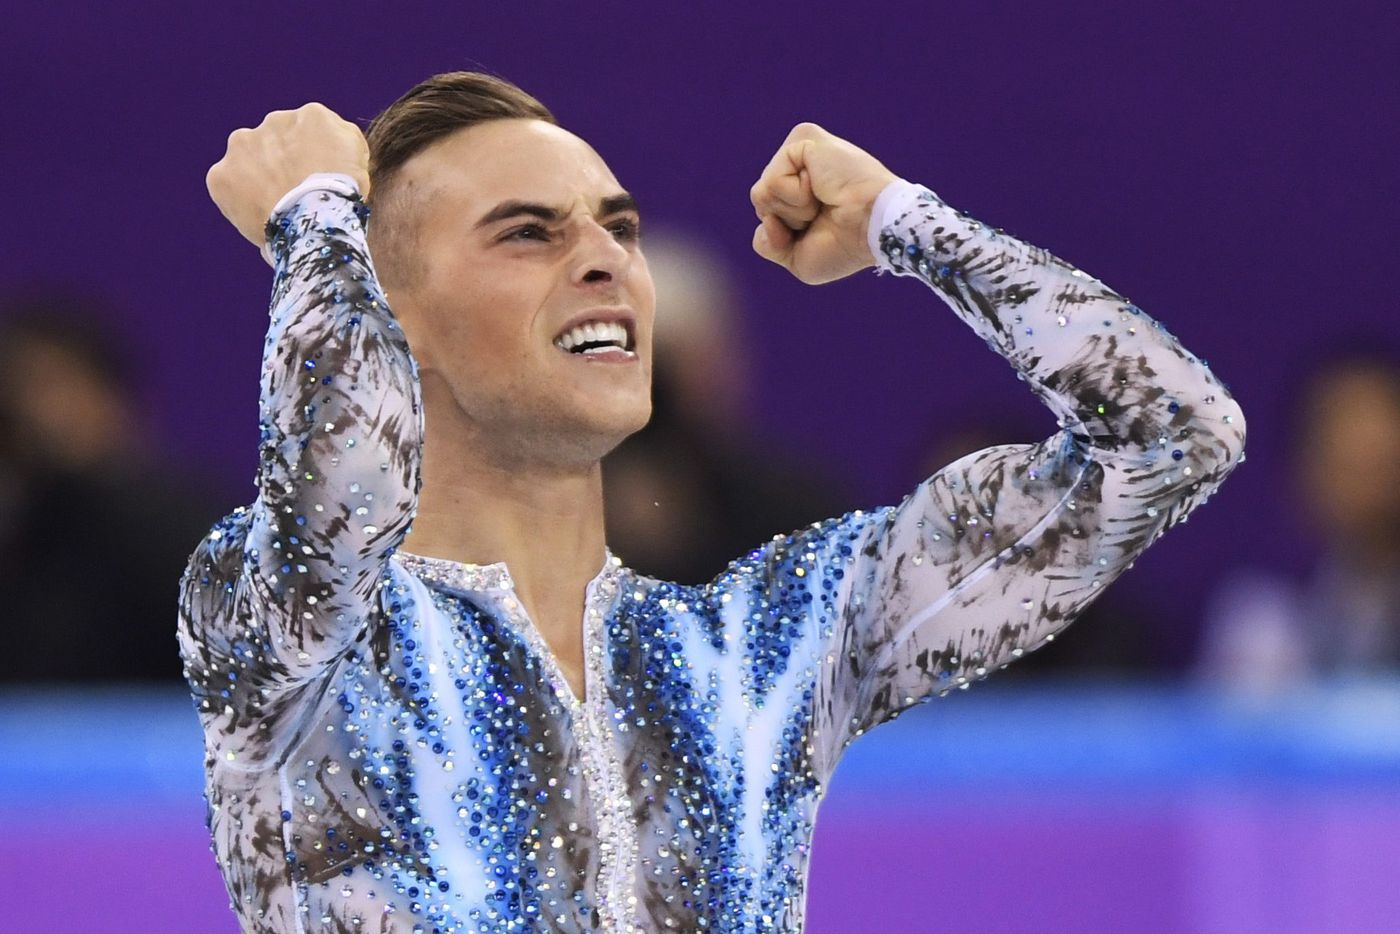 Scranton's Adam Rippon to guest star on NBC's 'Will & Grace'